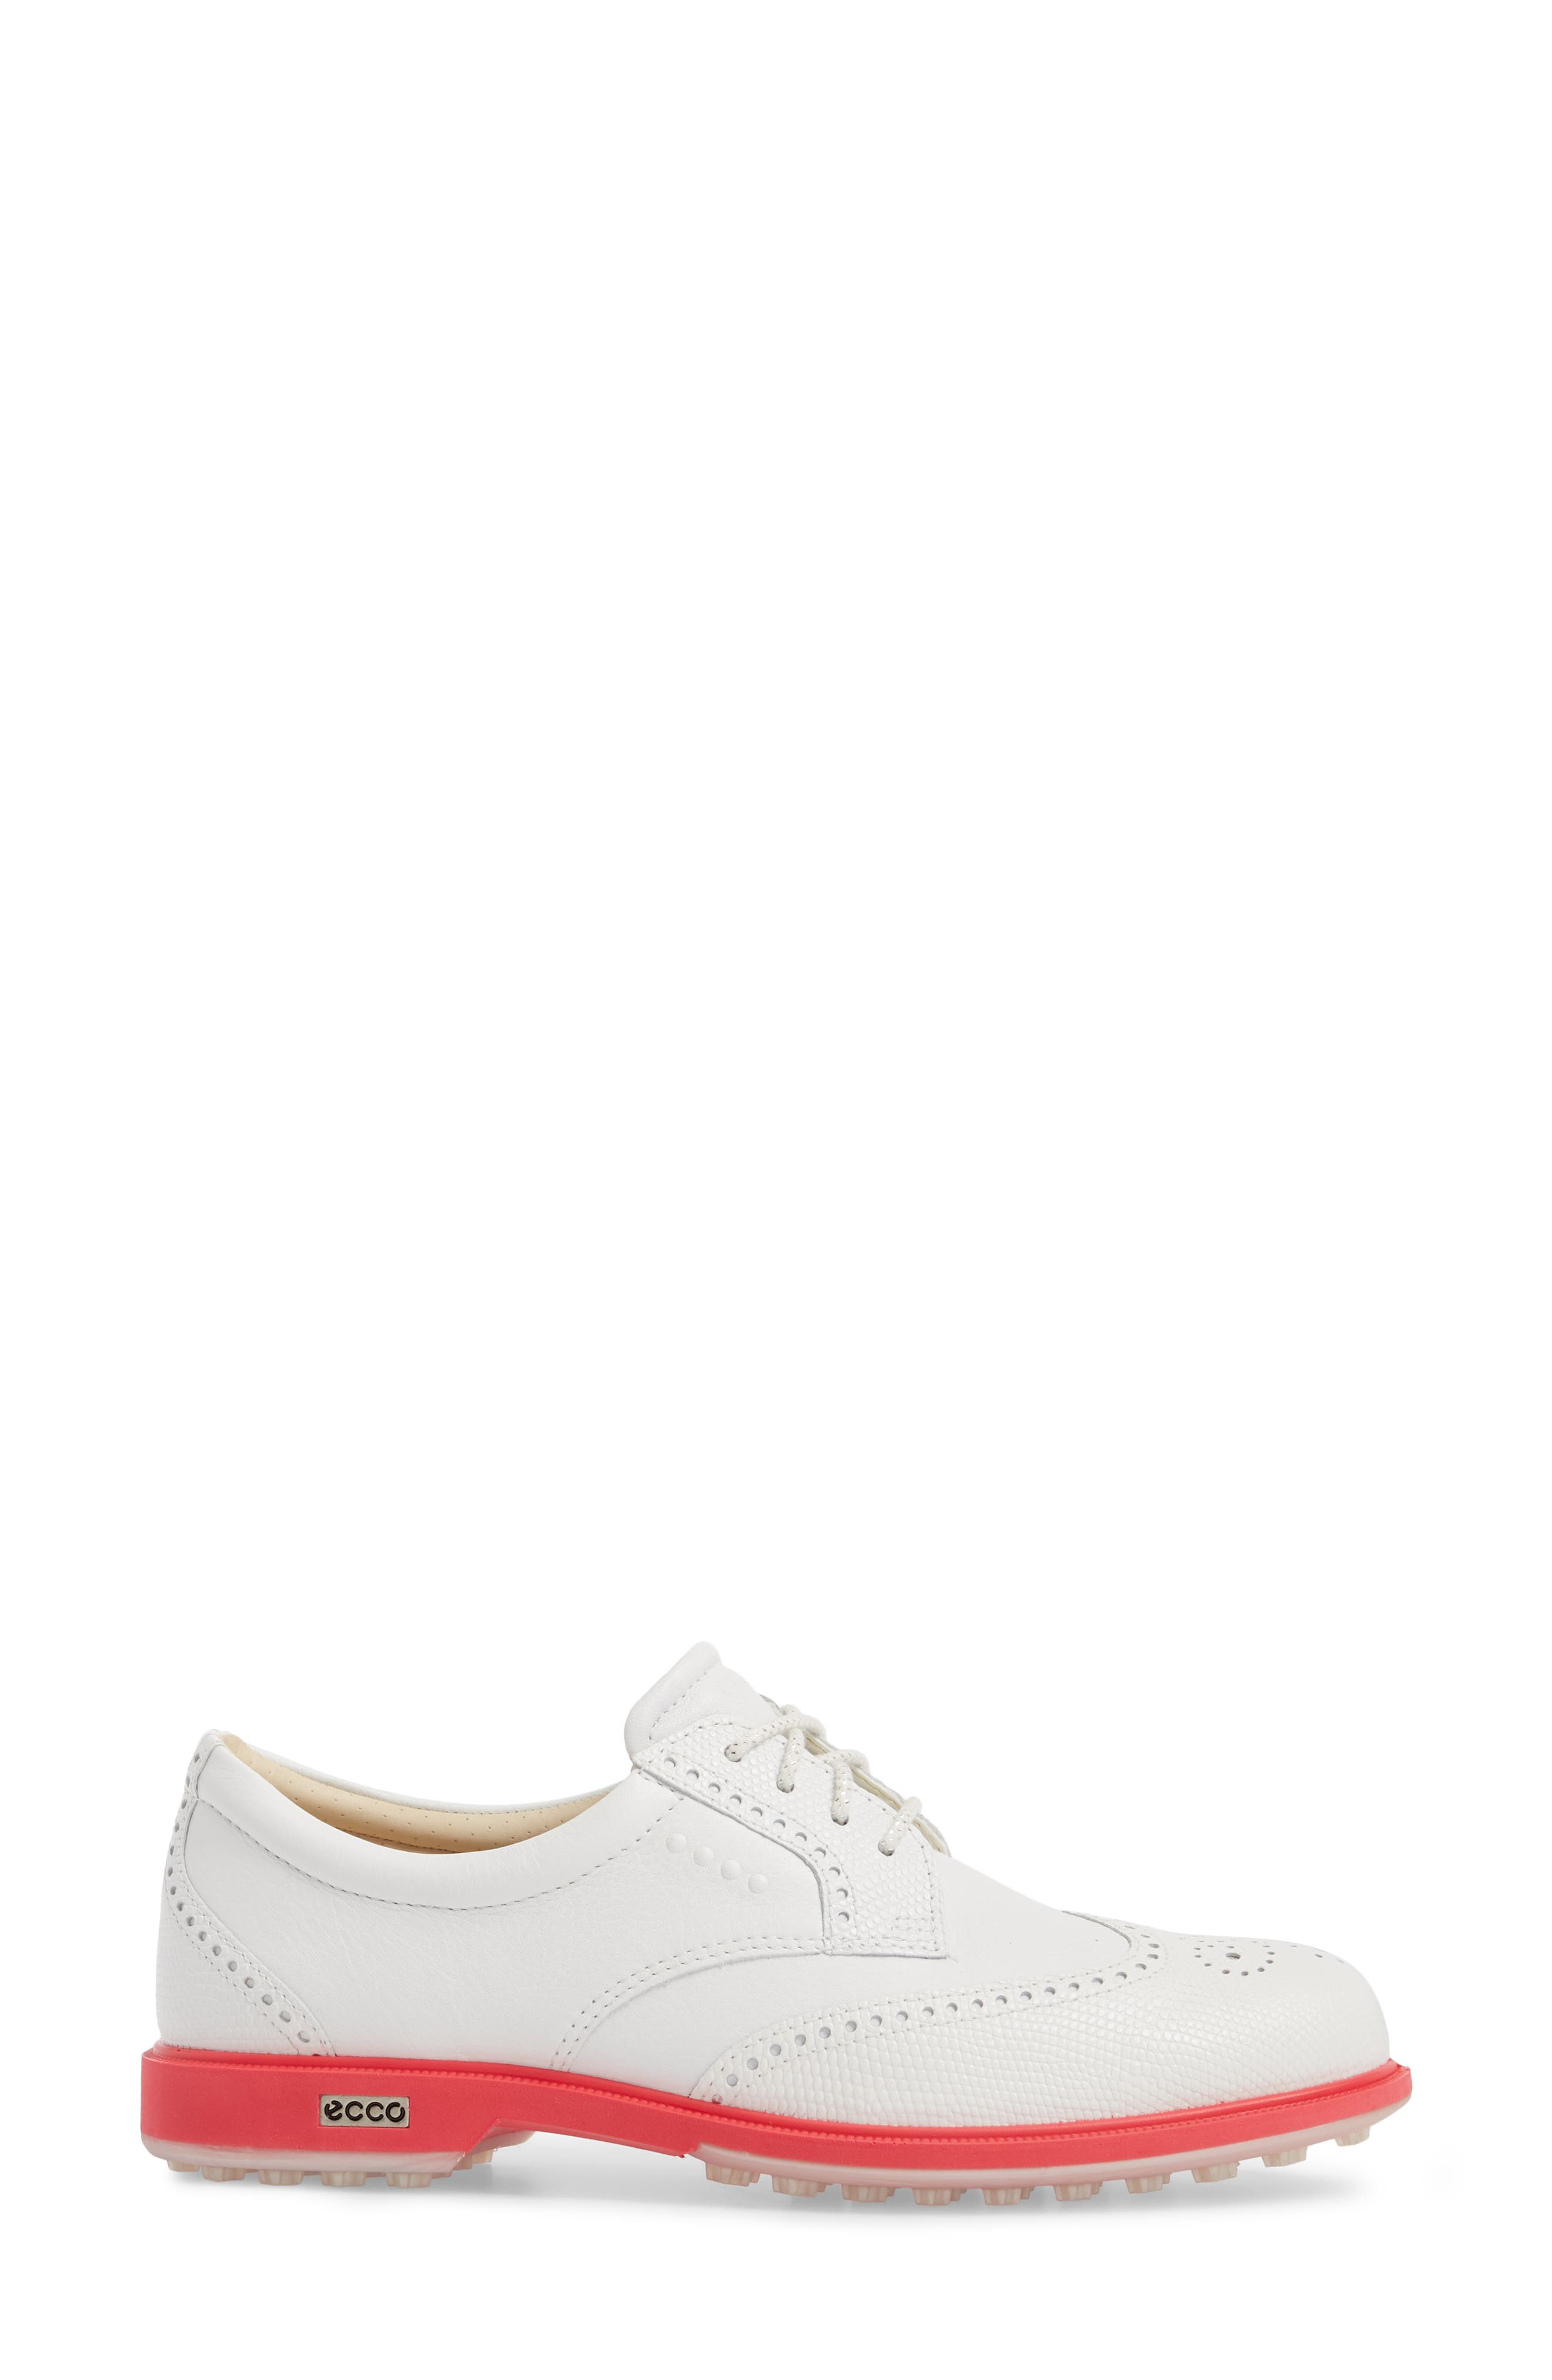 'Tour' Hybrid Wingtip Golf Shoe,                             Alternate thumbnail 3, color,                             WHITE LEATHER/ RED